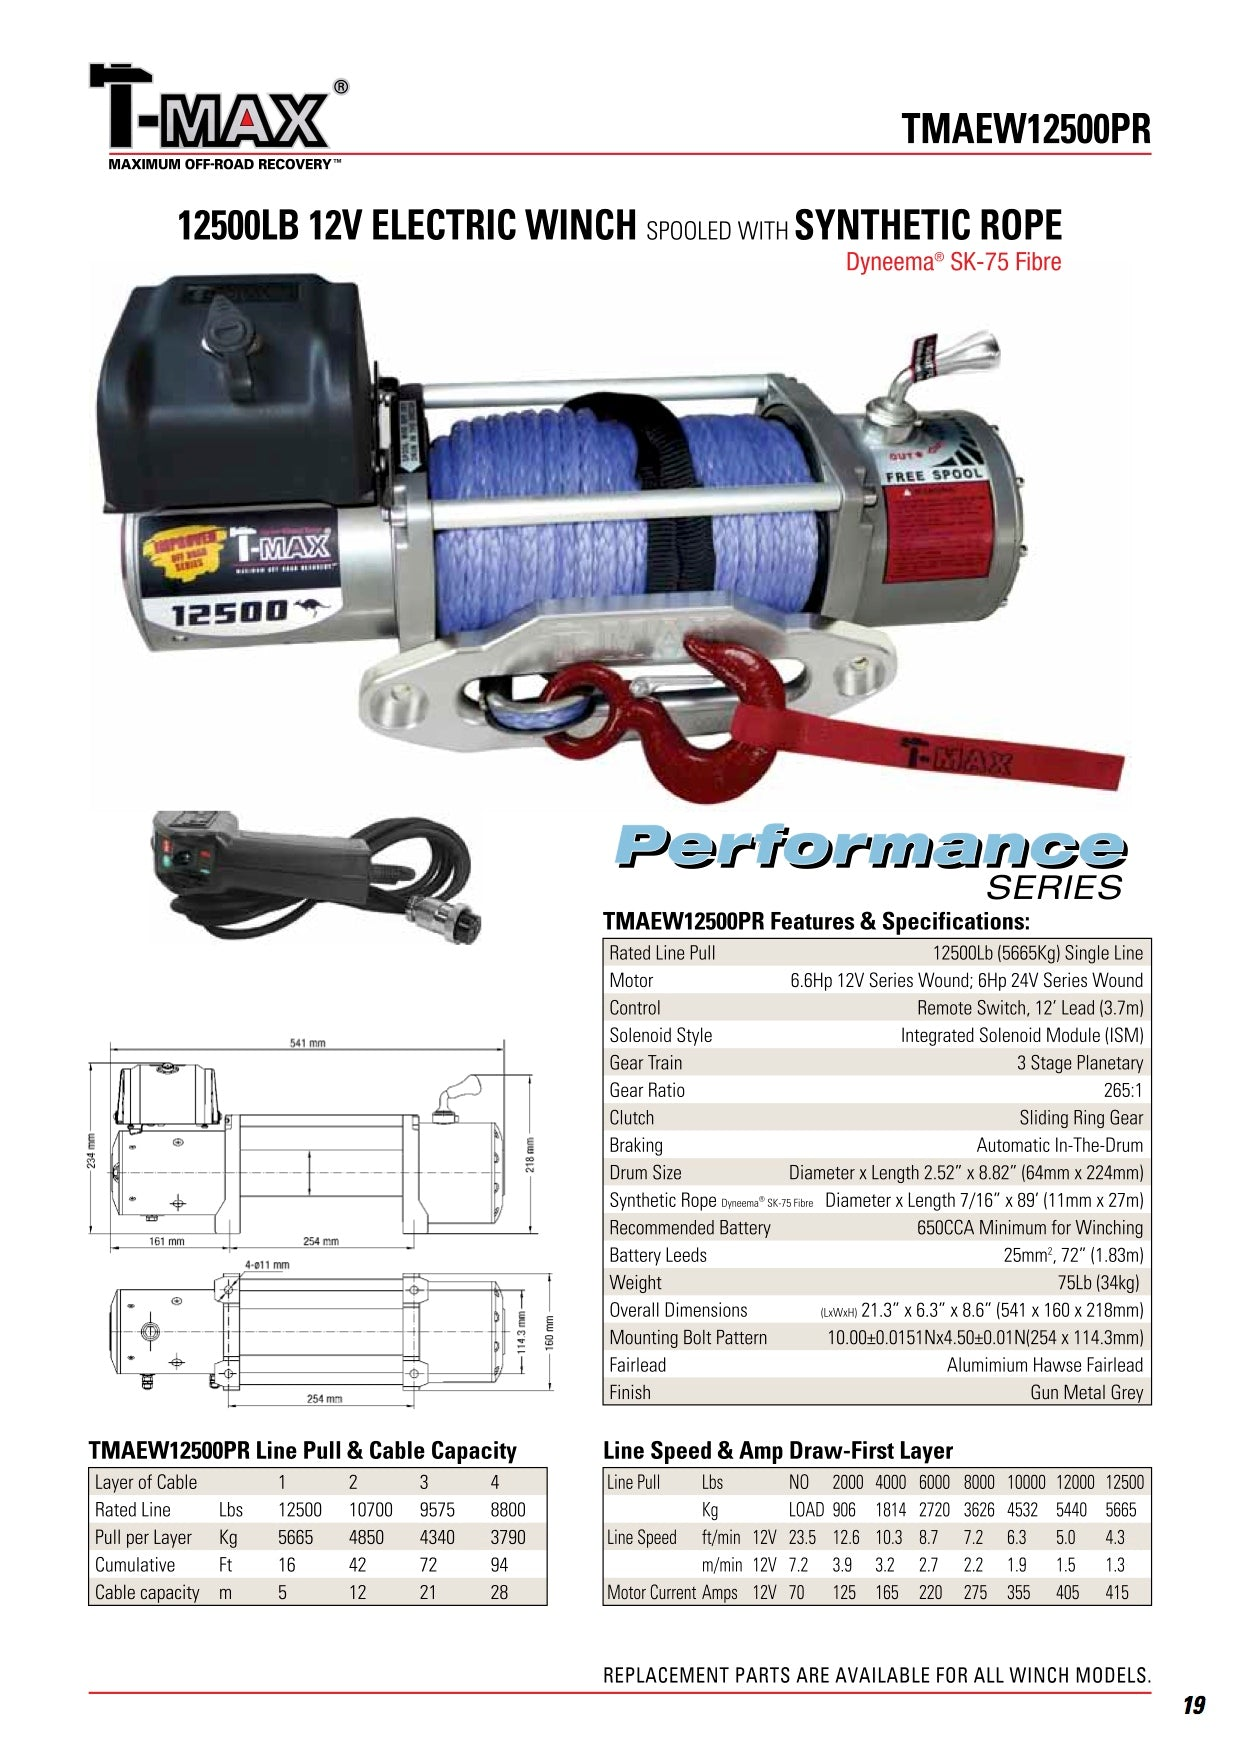 Tmax Tmaew12500 By T Max Tmaew12500pr Winchworld Winch Wiring Diagram After Sales Support Is Paramount To So Rest Assured When Purchasing A Youll Be Taken Care Of Well Beyond Your Purchase Date